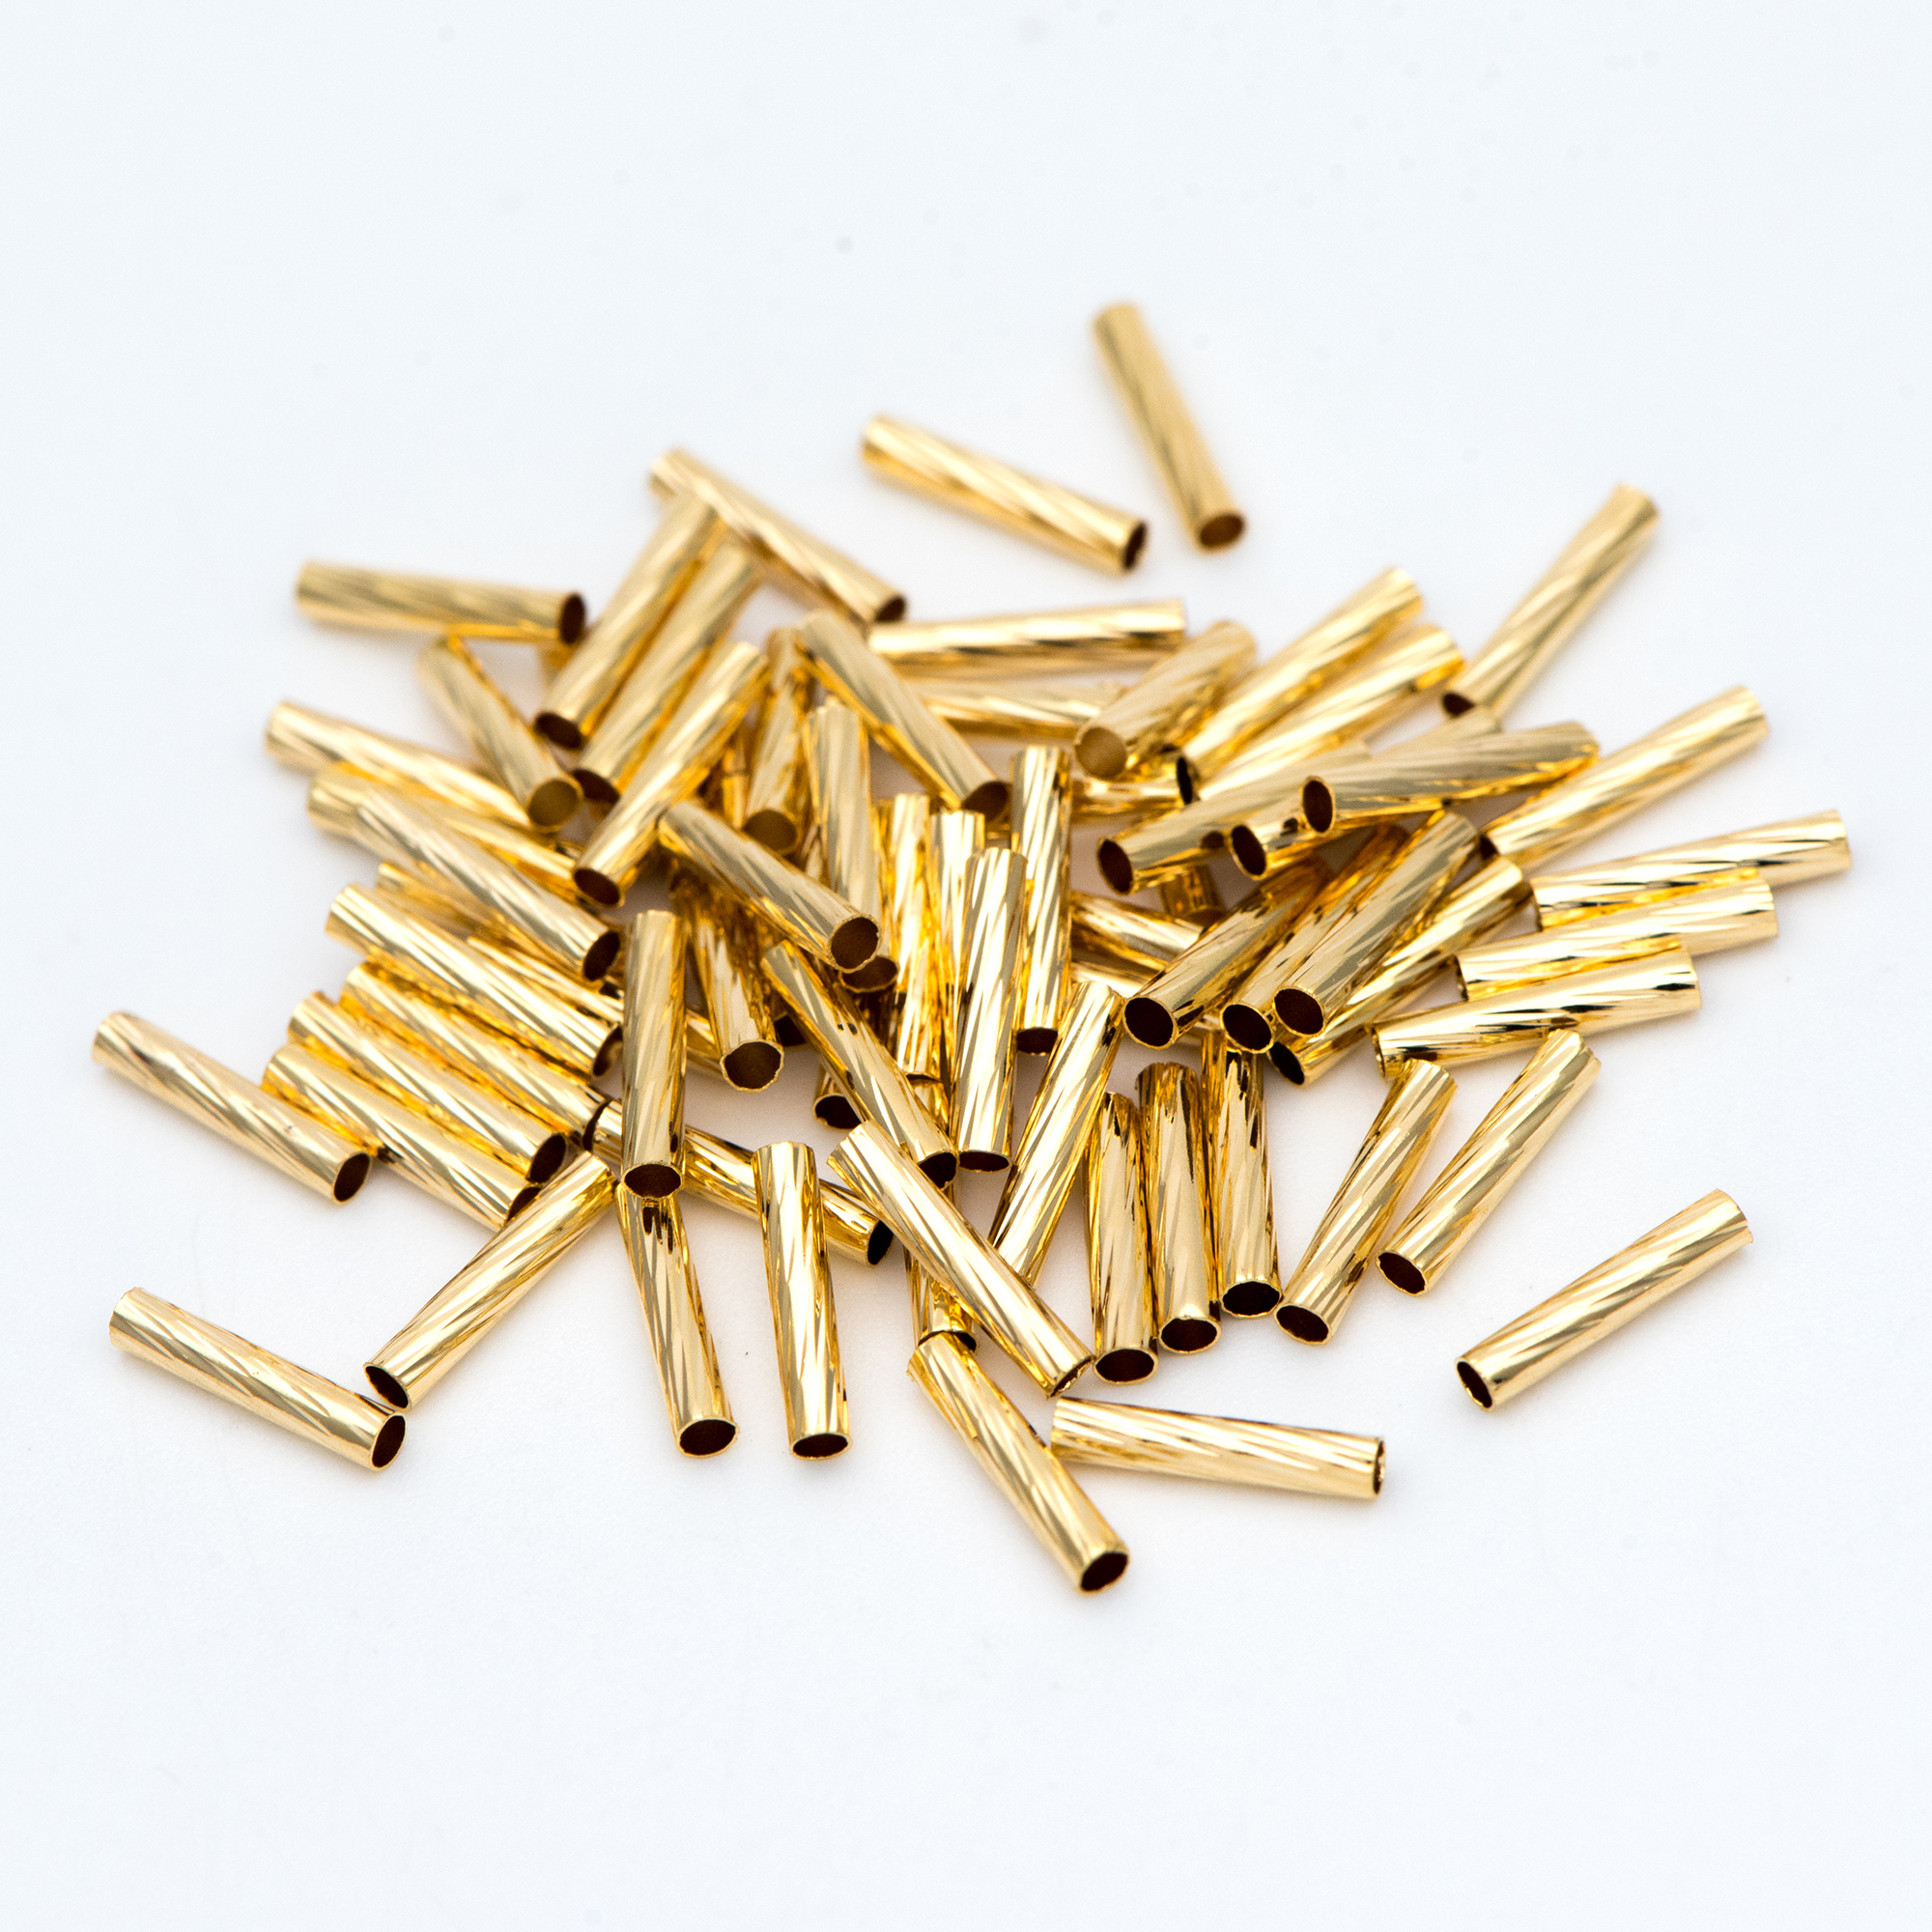 50pcs Gold Straight Tube Beads 10x2mm, Real Gold Plated Brass Tube Spacers (GB-896)